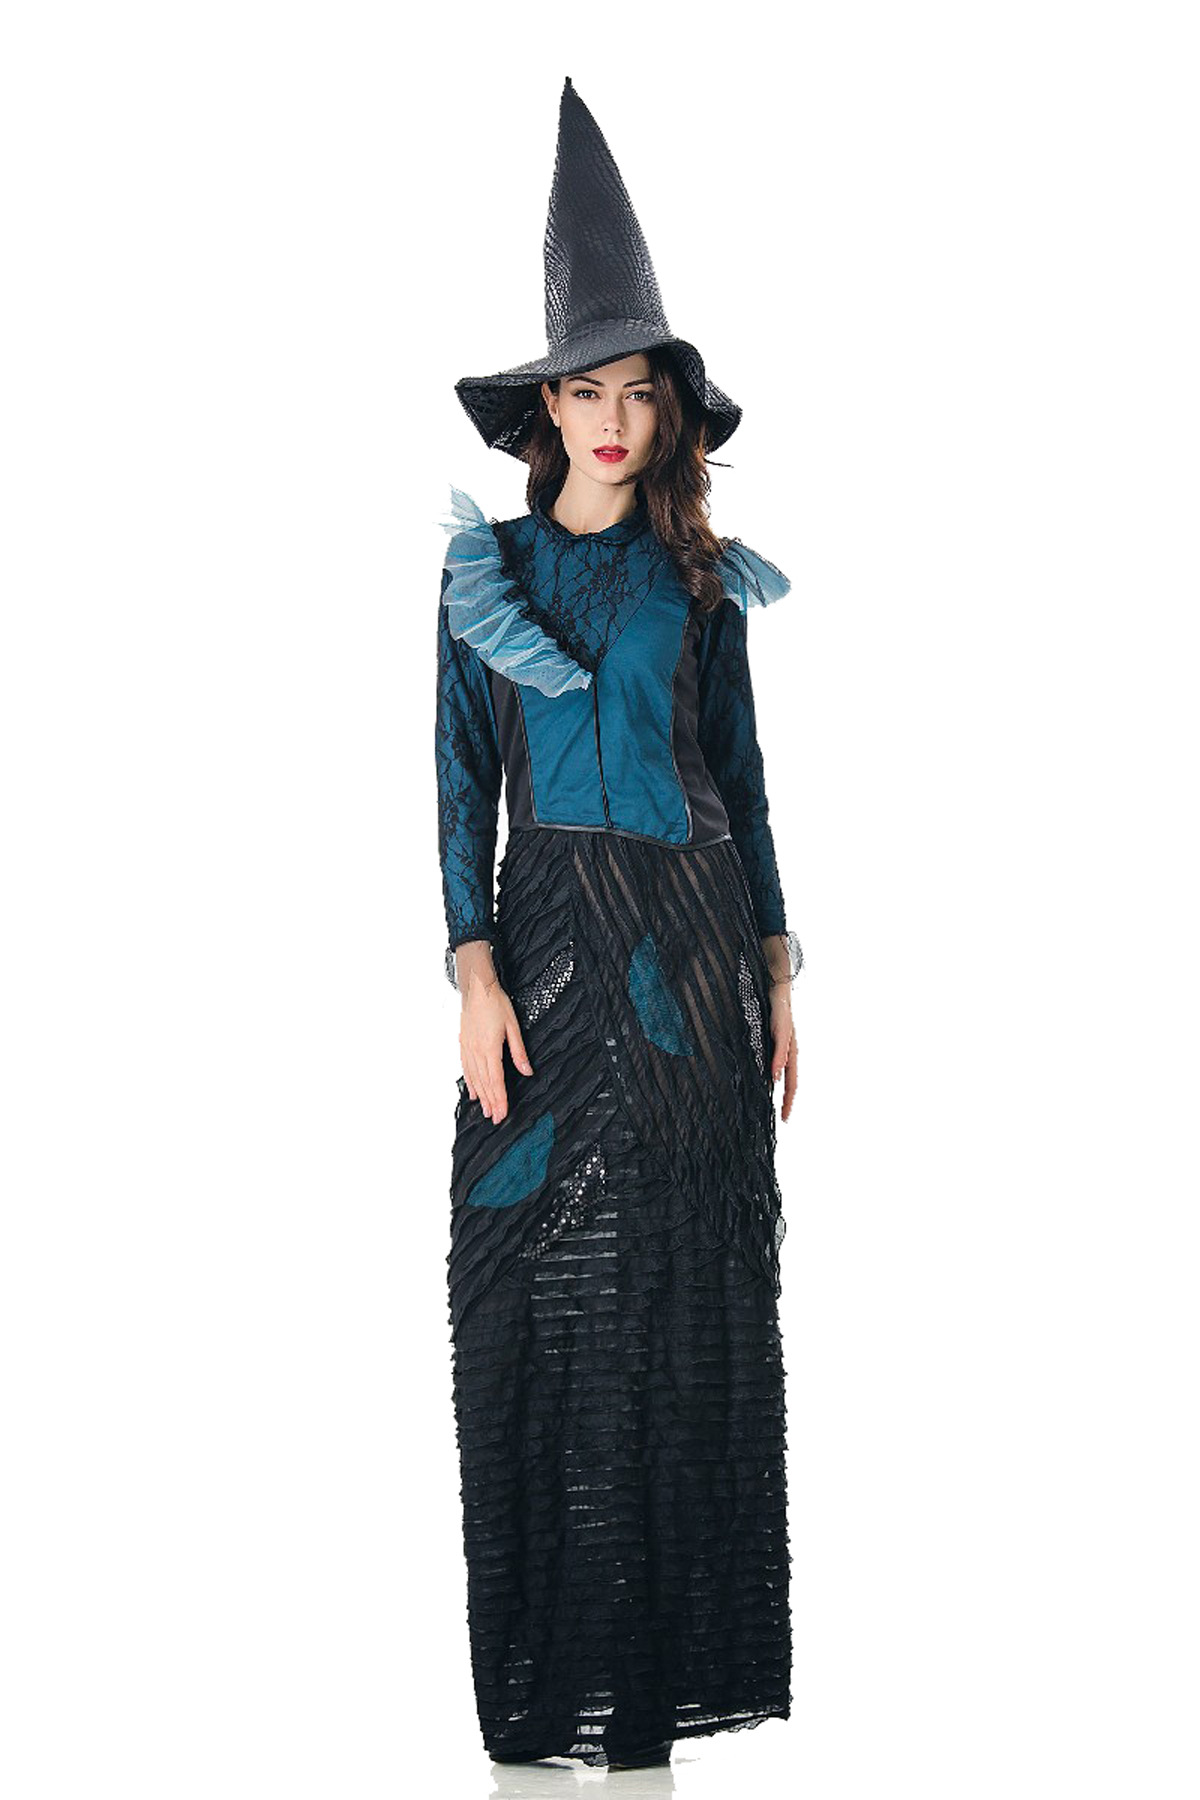 Wizard costume adult role play costume cos Witch Costume long classic female costume